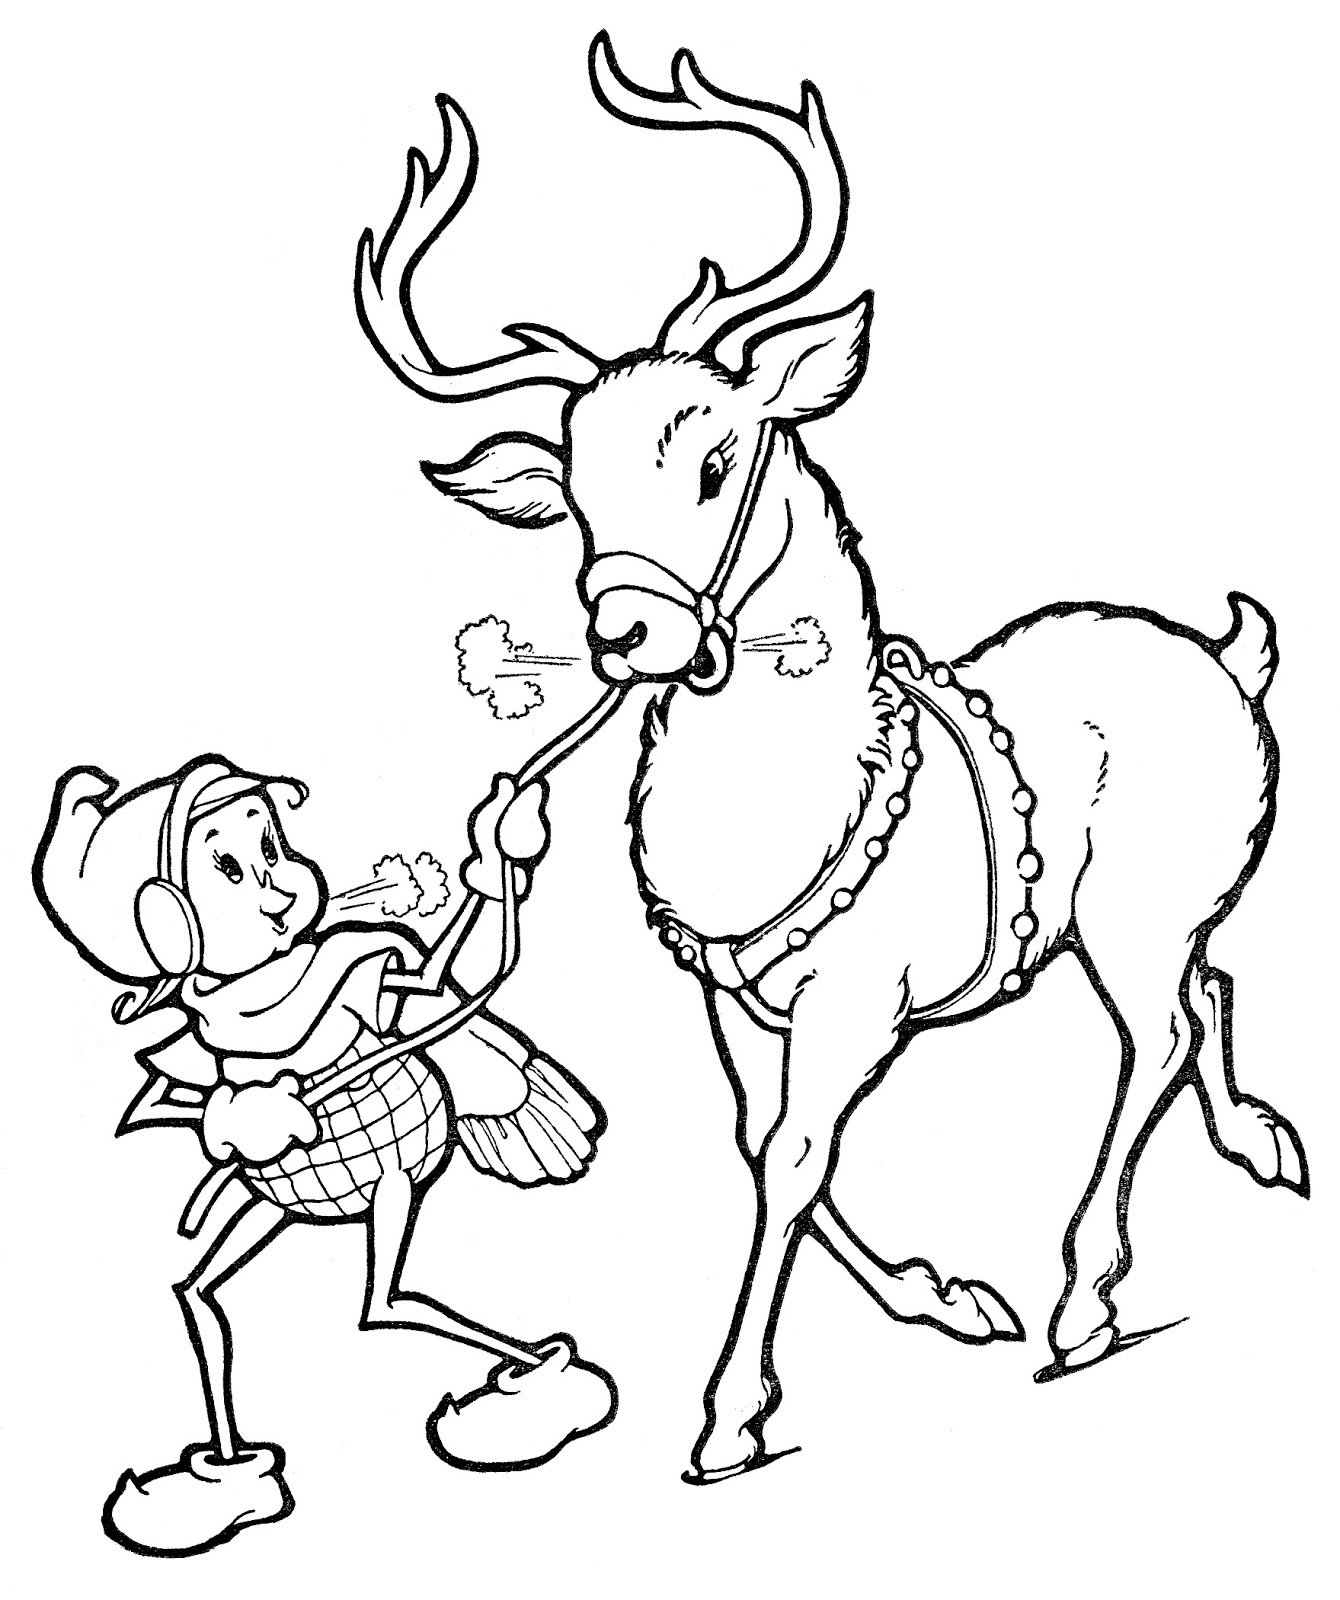 Elf Black And White Christmas Line Art Elf With Reindeer